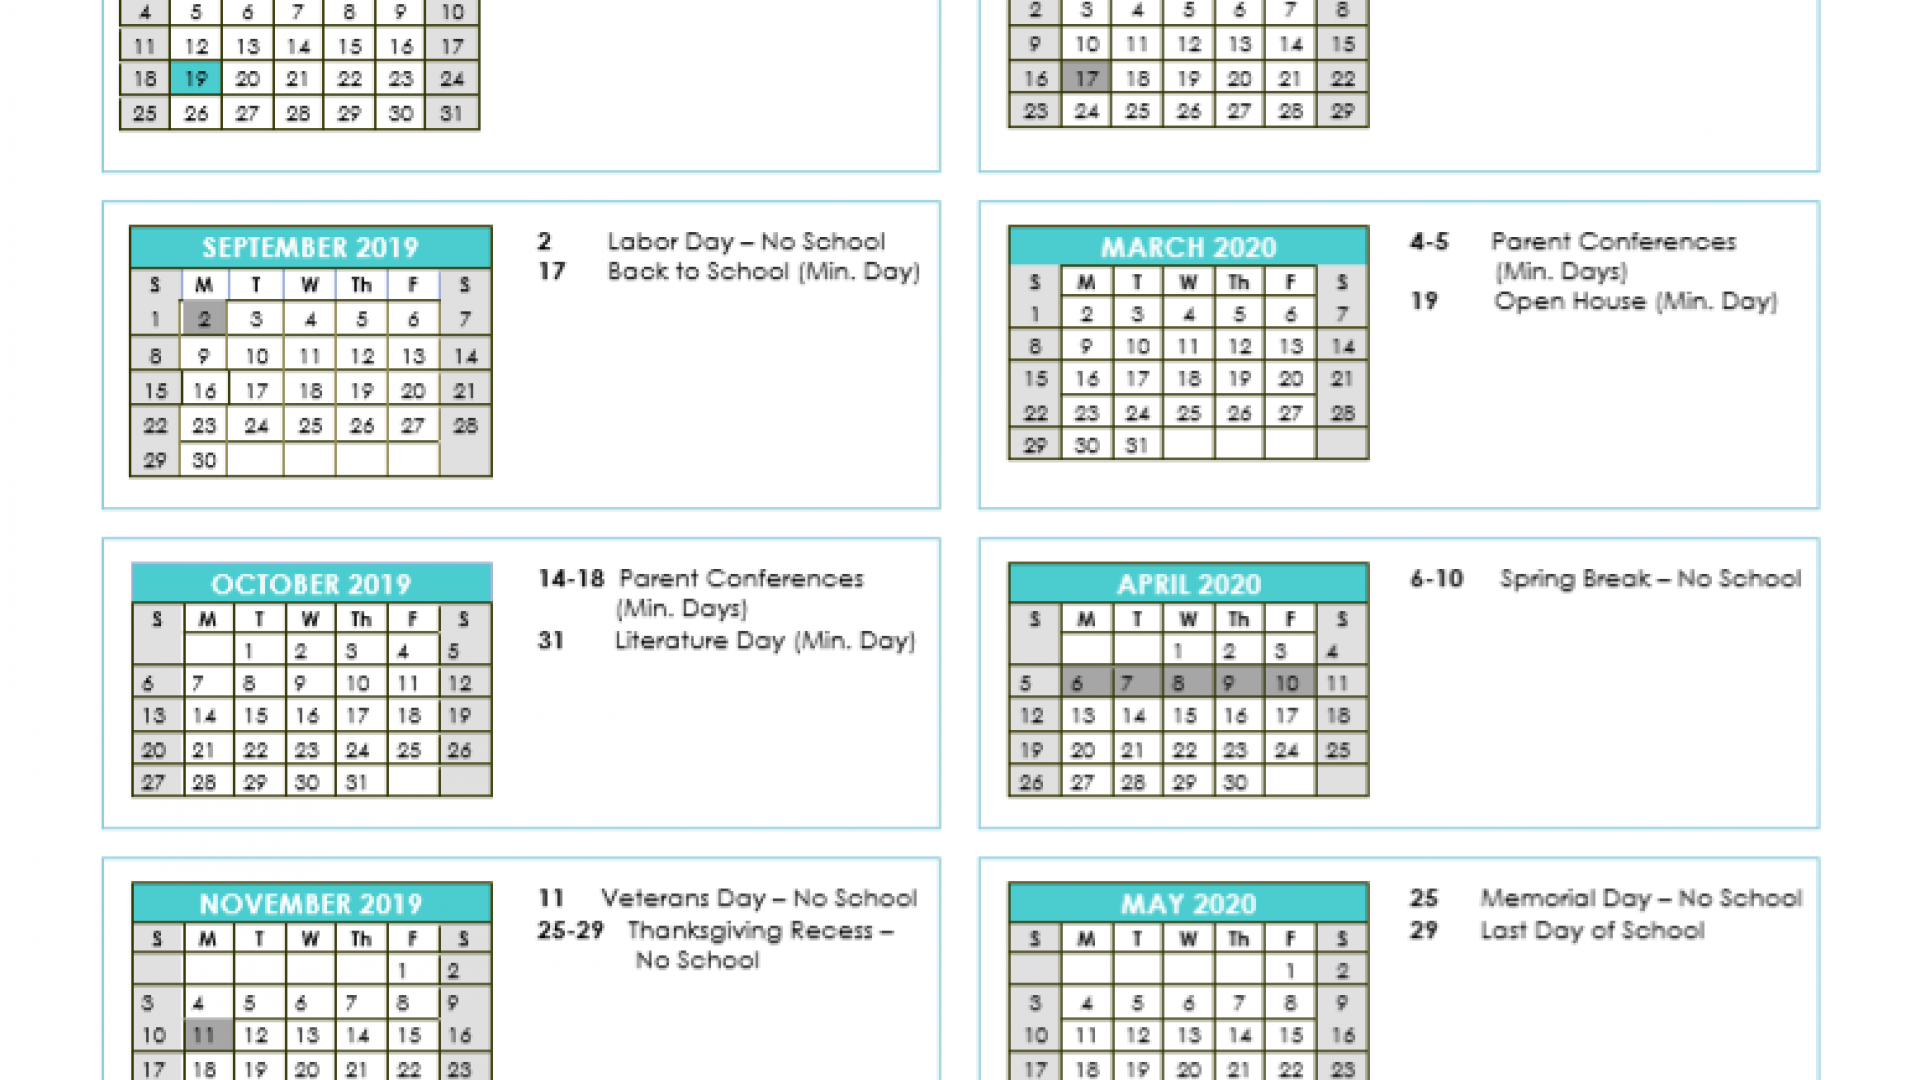 2019-2020 SPCS Oceanside School Calendar